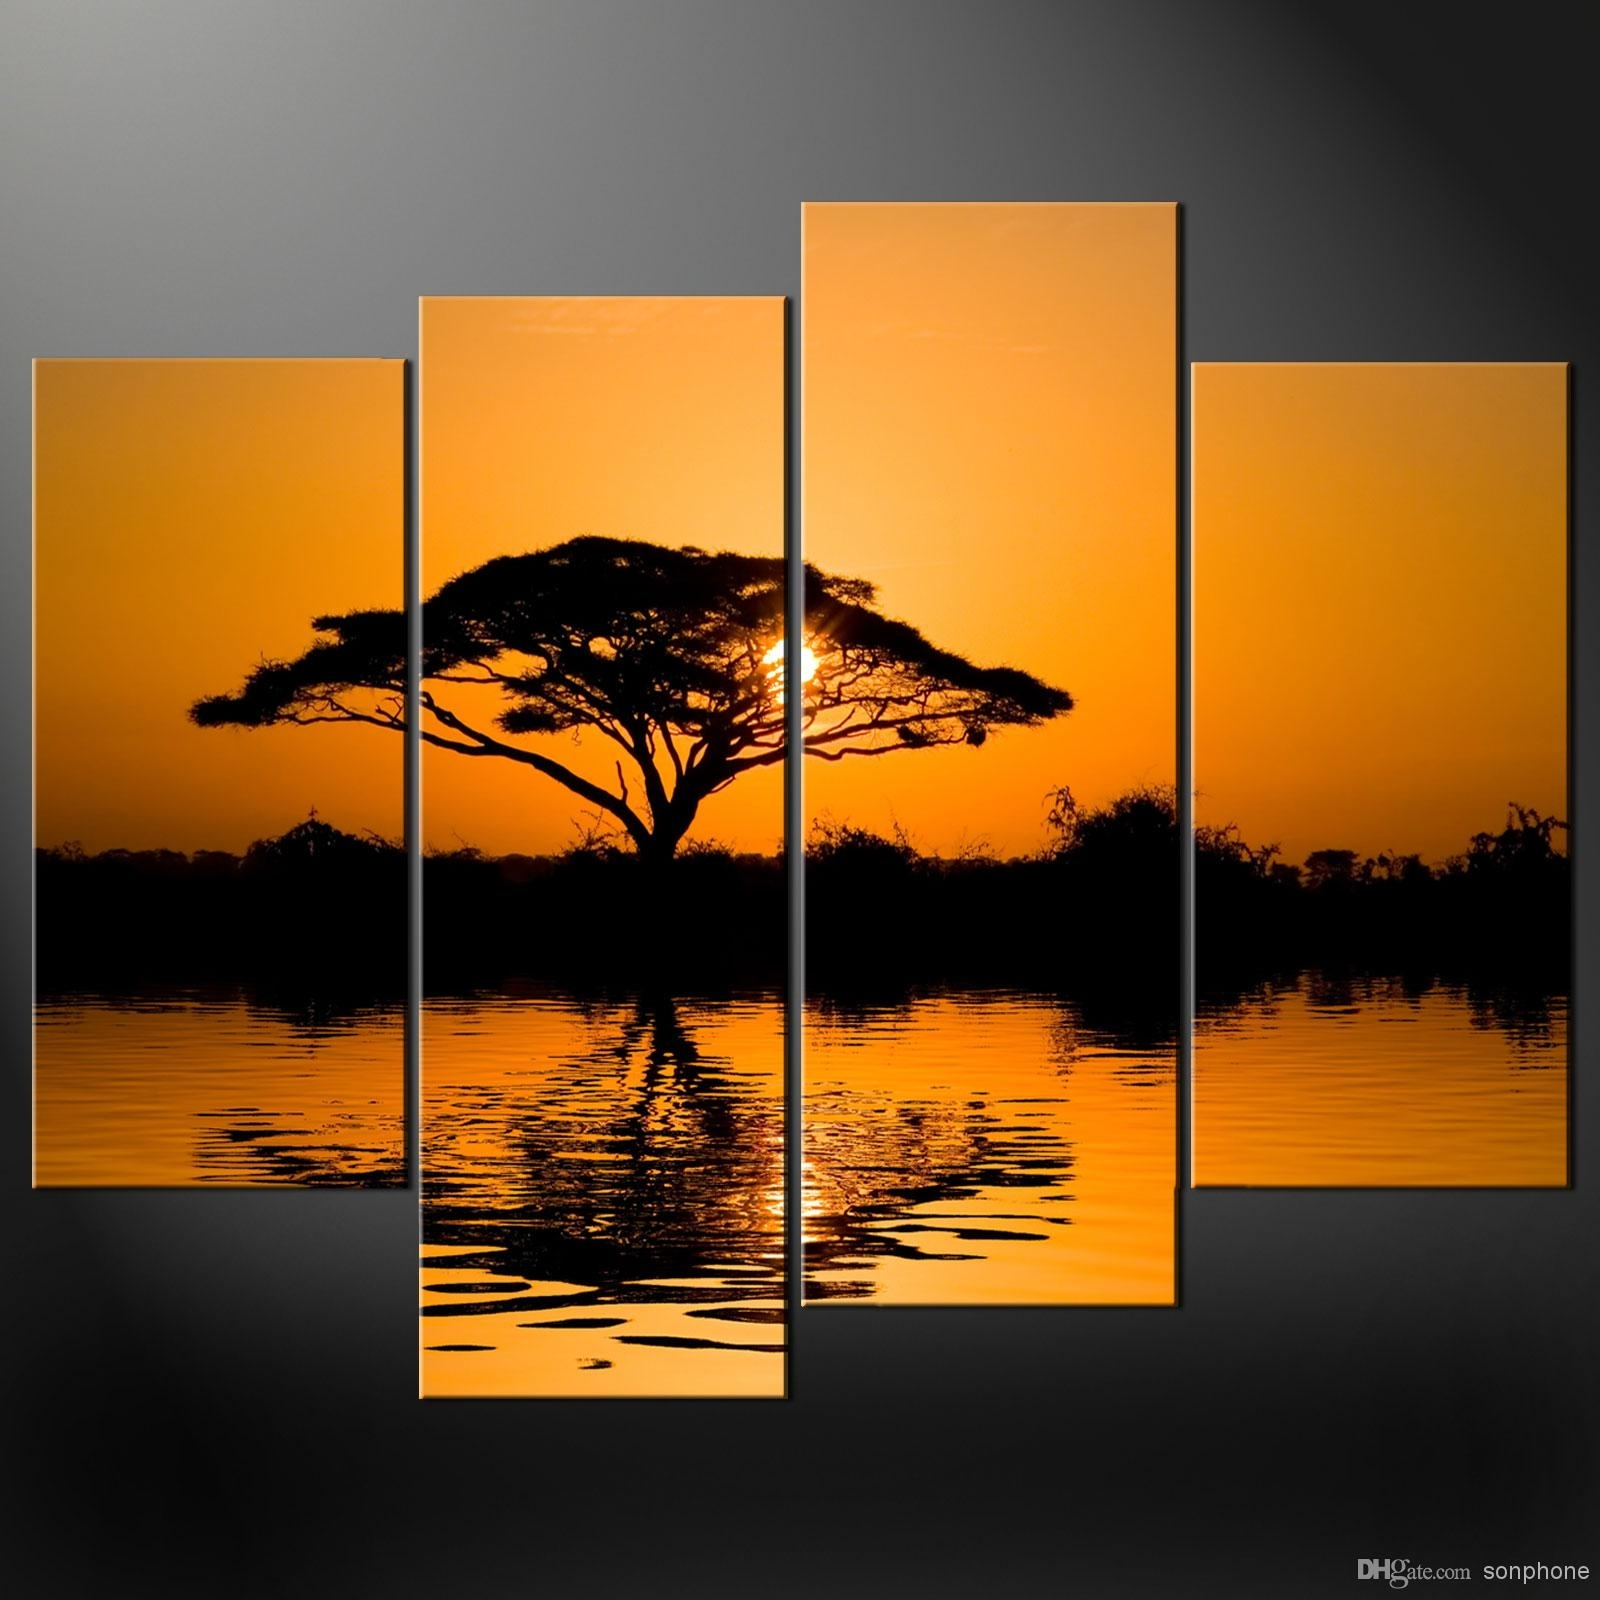 Framed 4 Panel Large African Wall Art Decor Modern Sunset Oil Intended For 2017 Cheap Framed Wall Art (View 4 of 20)